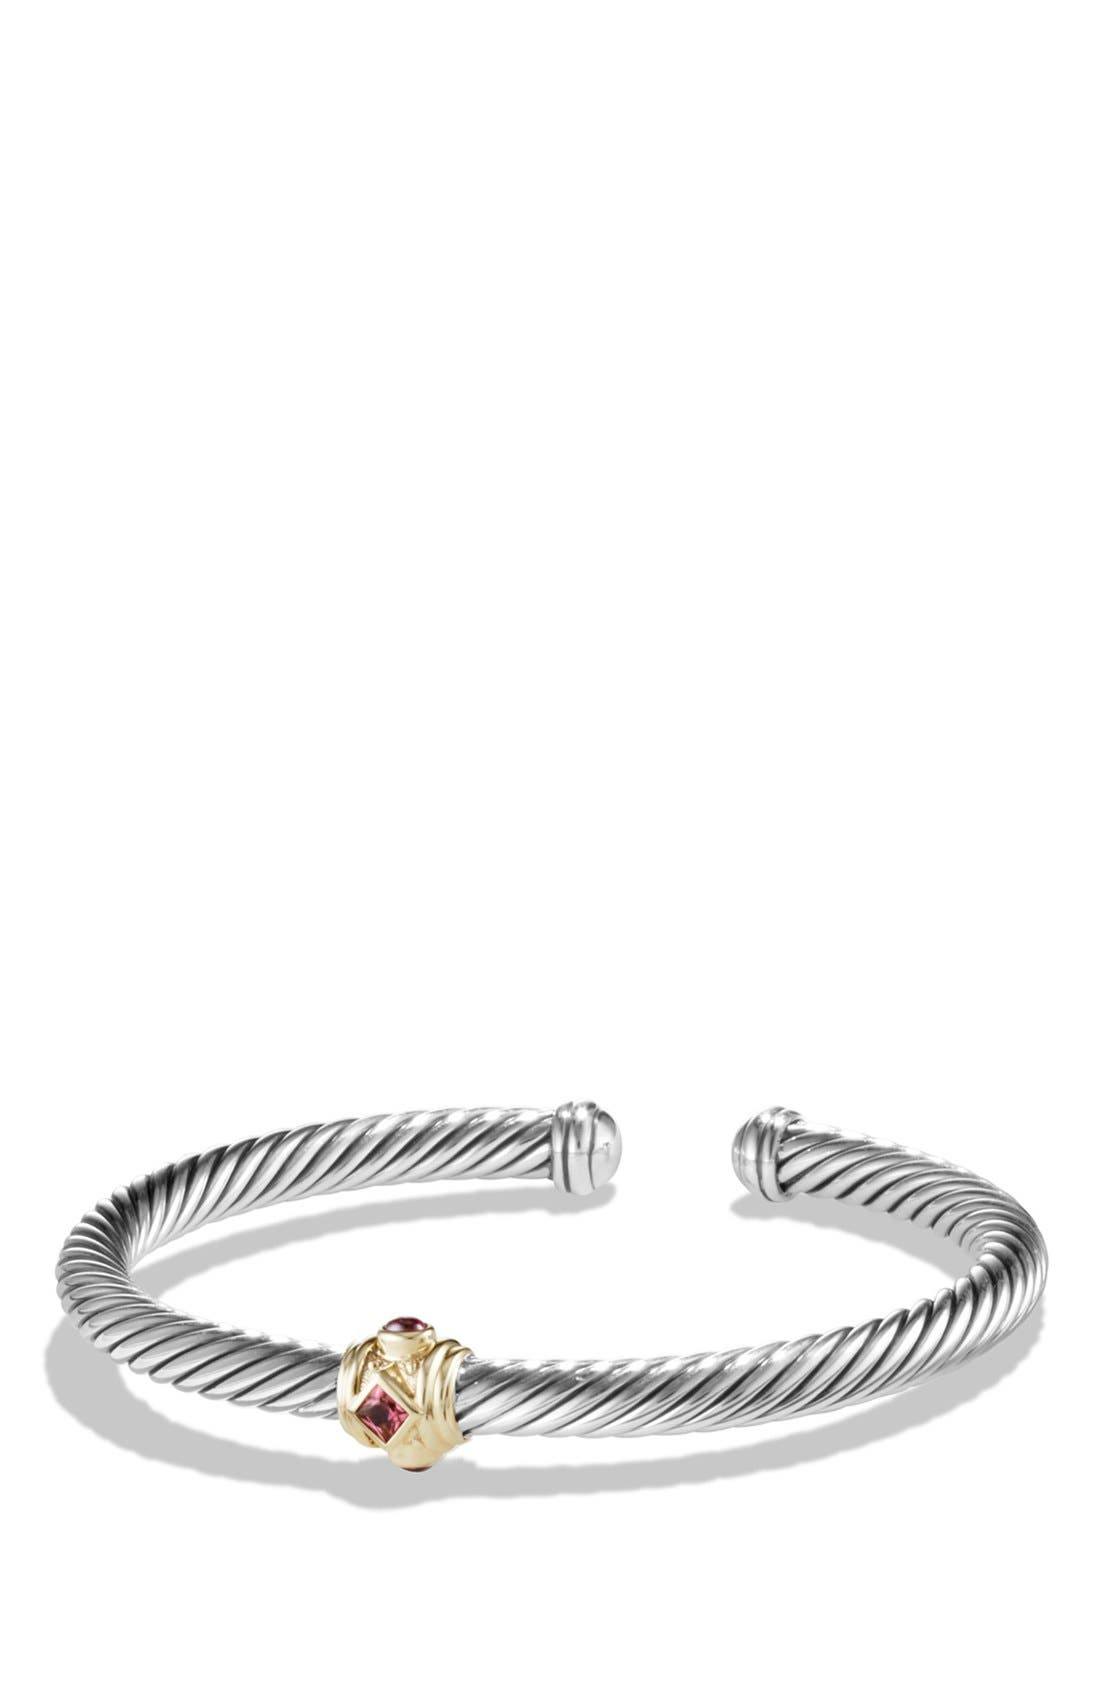 DAVID YURMAN Renaissance Bracelet with Semiprecious Stone and 14K Gold